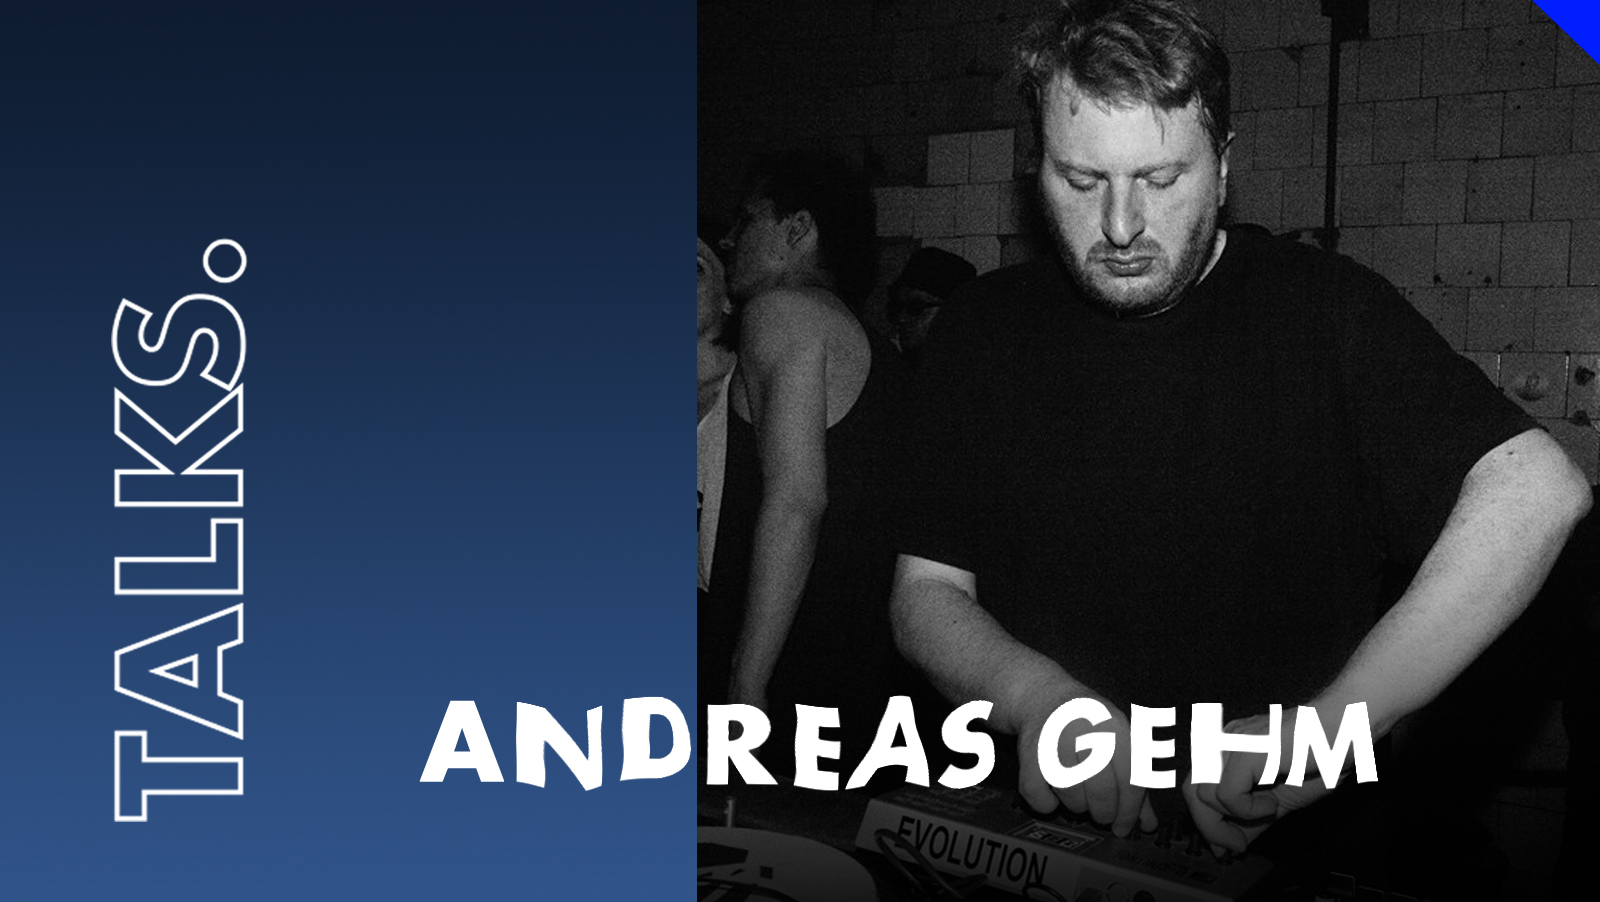 Andreas Gehm